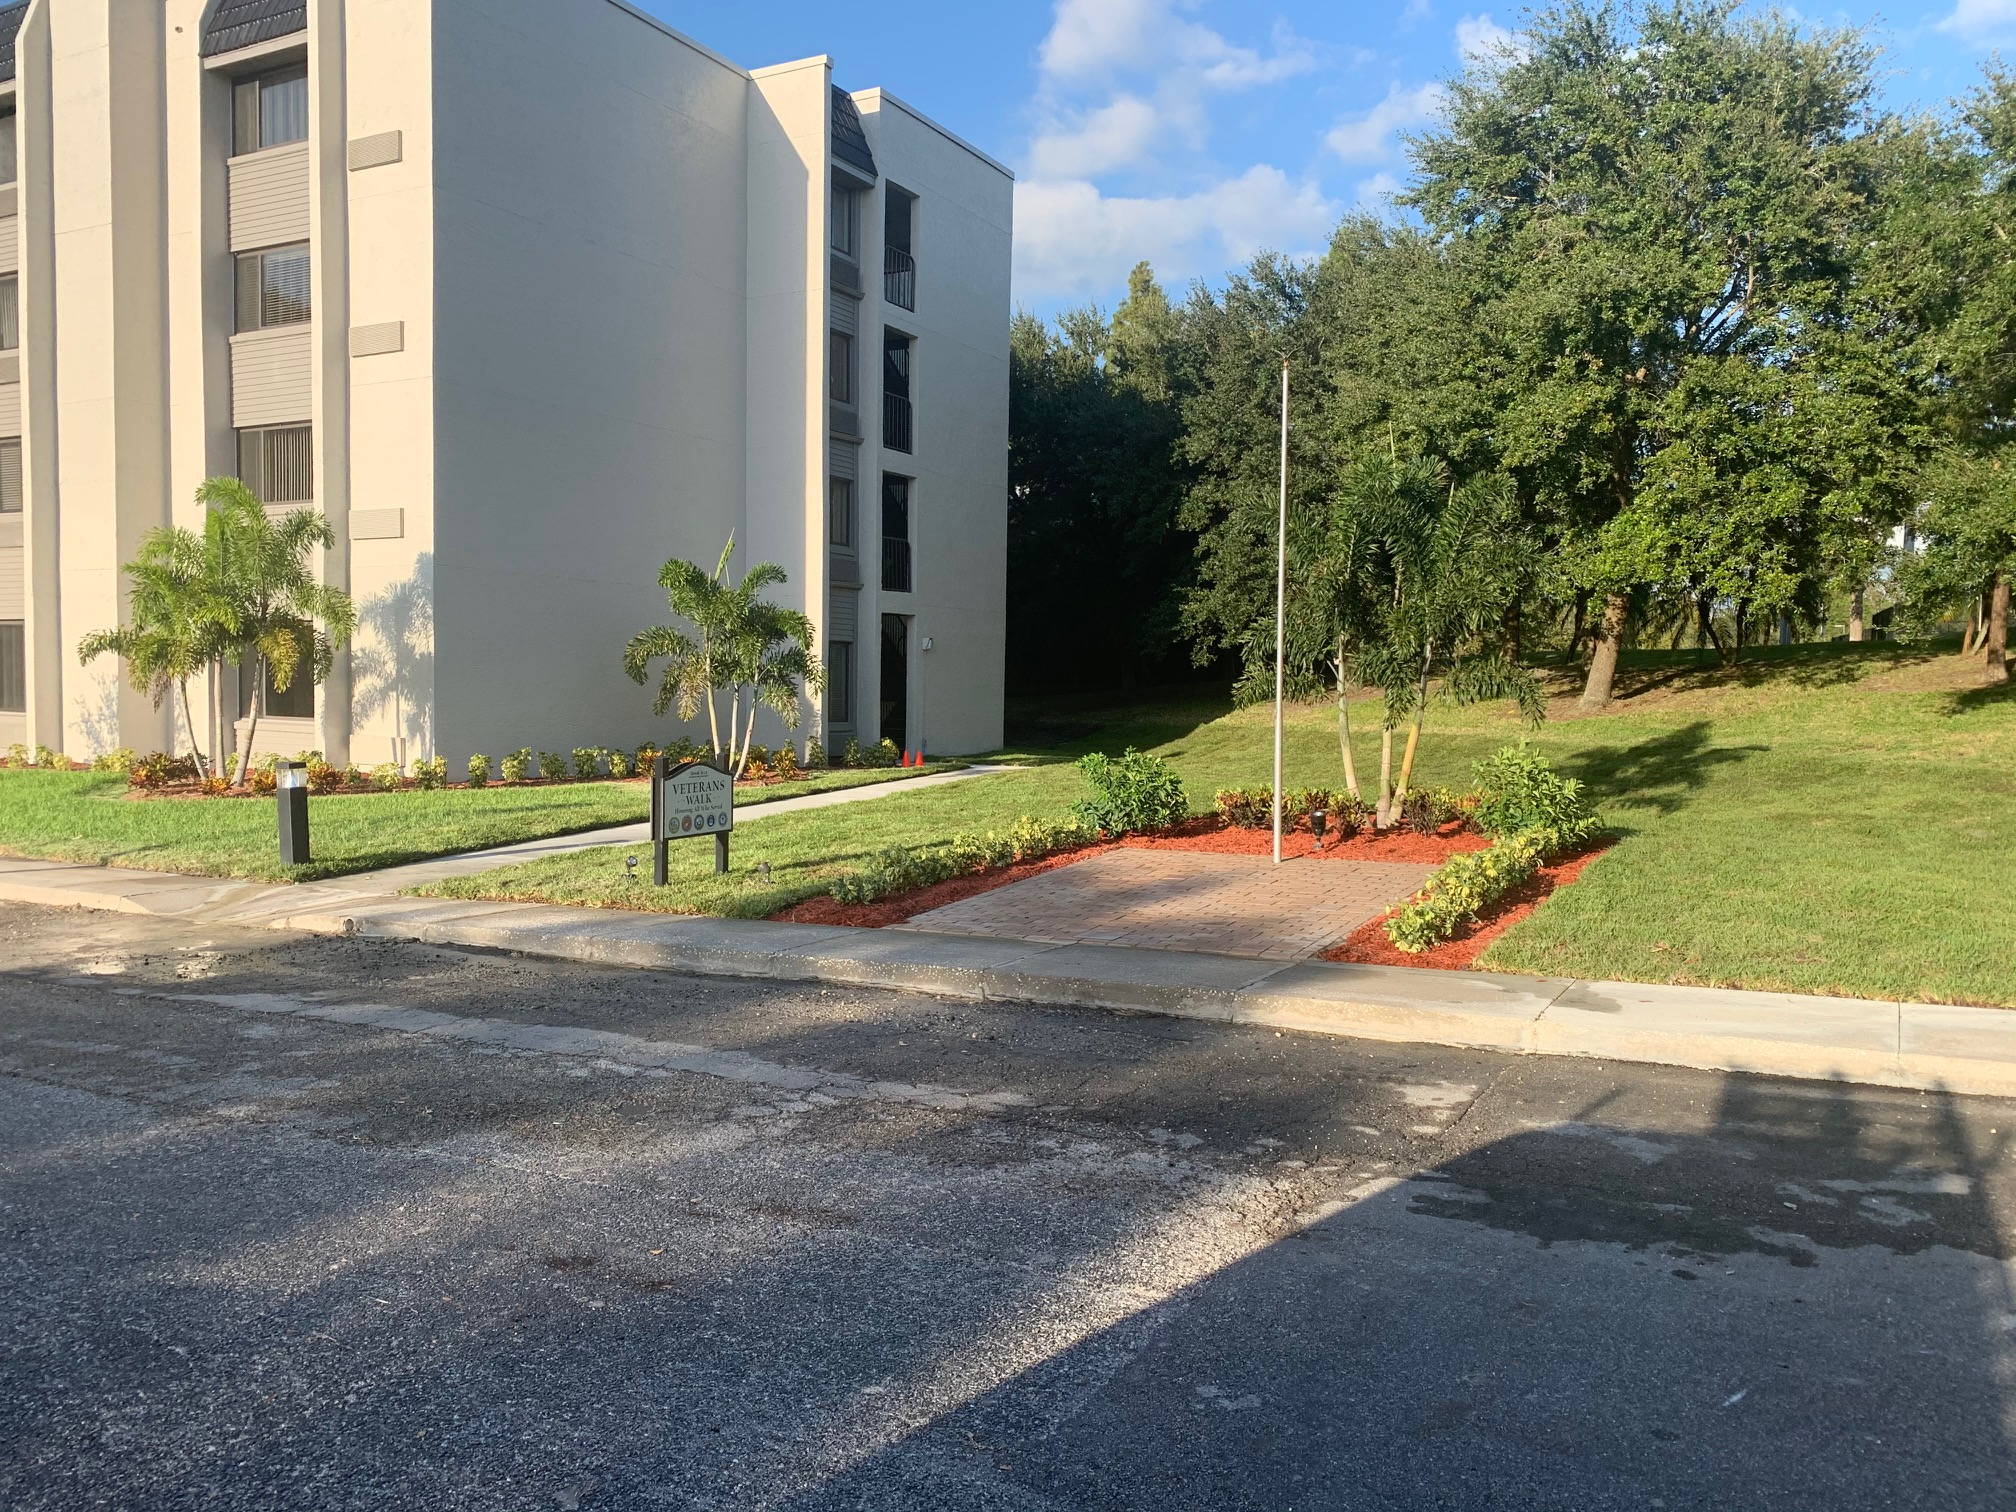 landscaping project for HOA